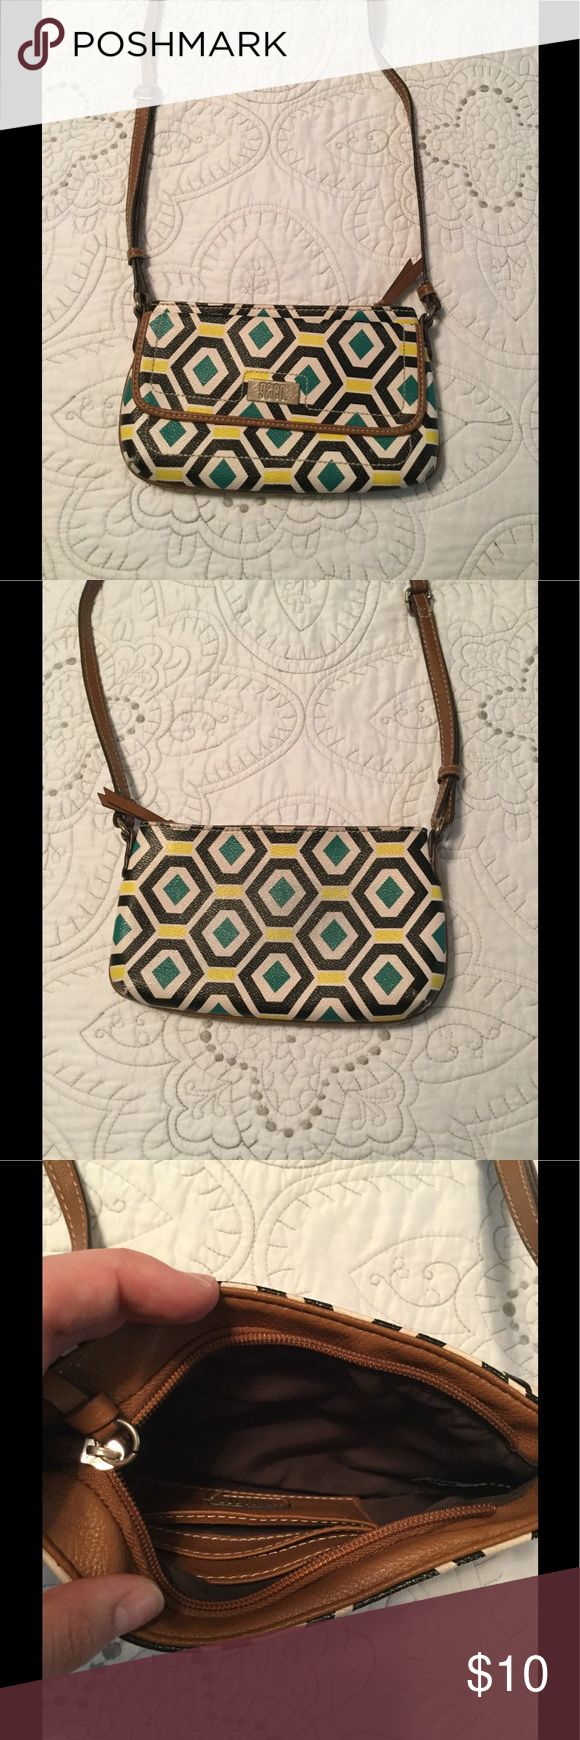 9&CO Small Purse Really cute geometric pattern with green and yellow accents. Shoulder or cross body bag with one pocket on the exterior. Has several spaces of credit cards on the interior. Inside is very clean with NO pen marks or scratches, rips, tears, etc. minimal wear on the corner as pictured. Make me an offer!XOXO jcpenney Bags Mini Bags